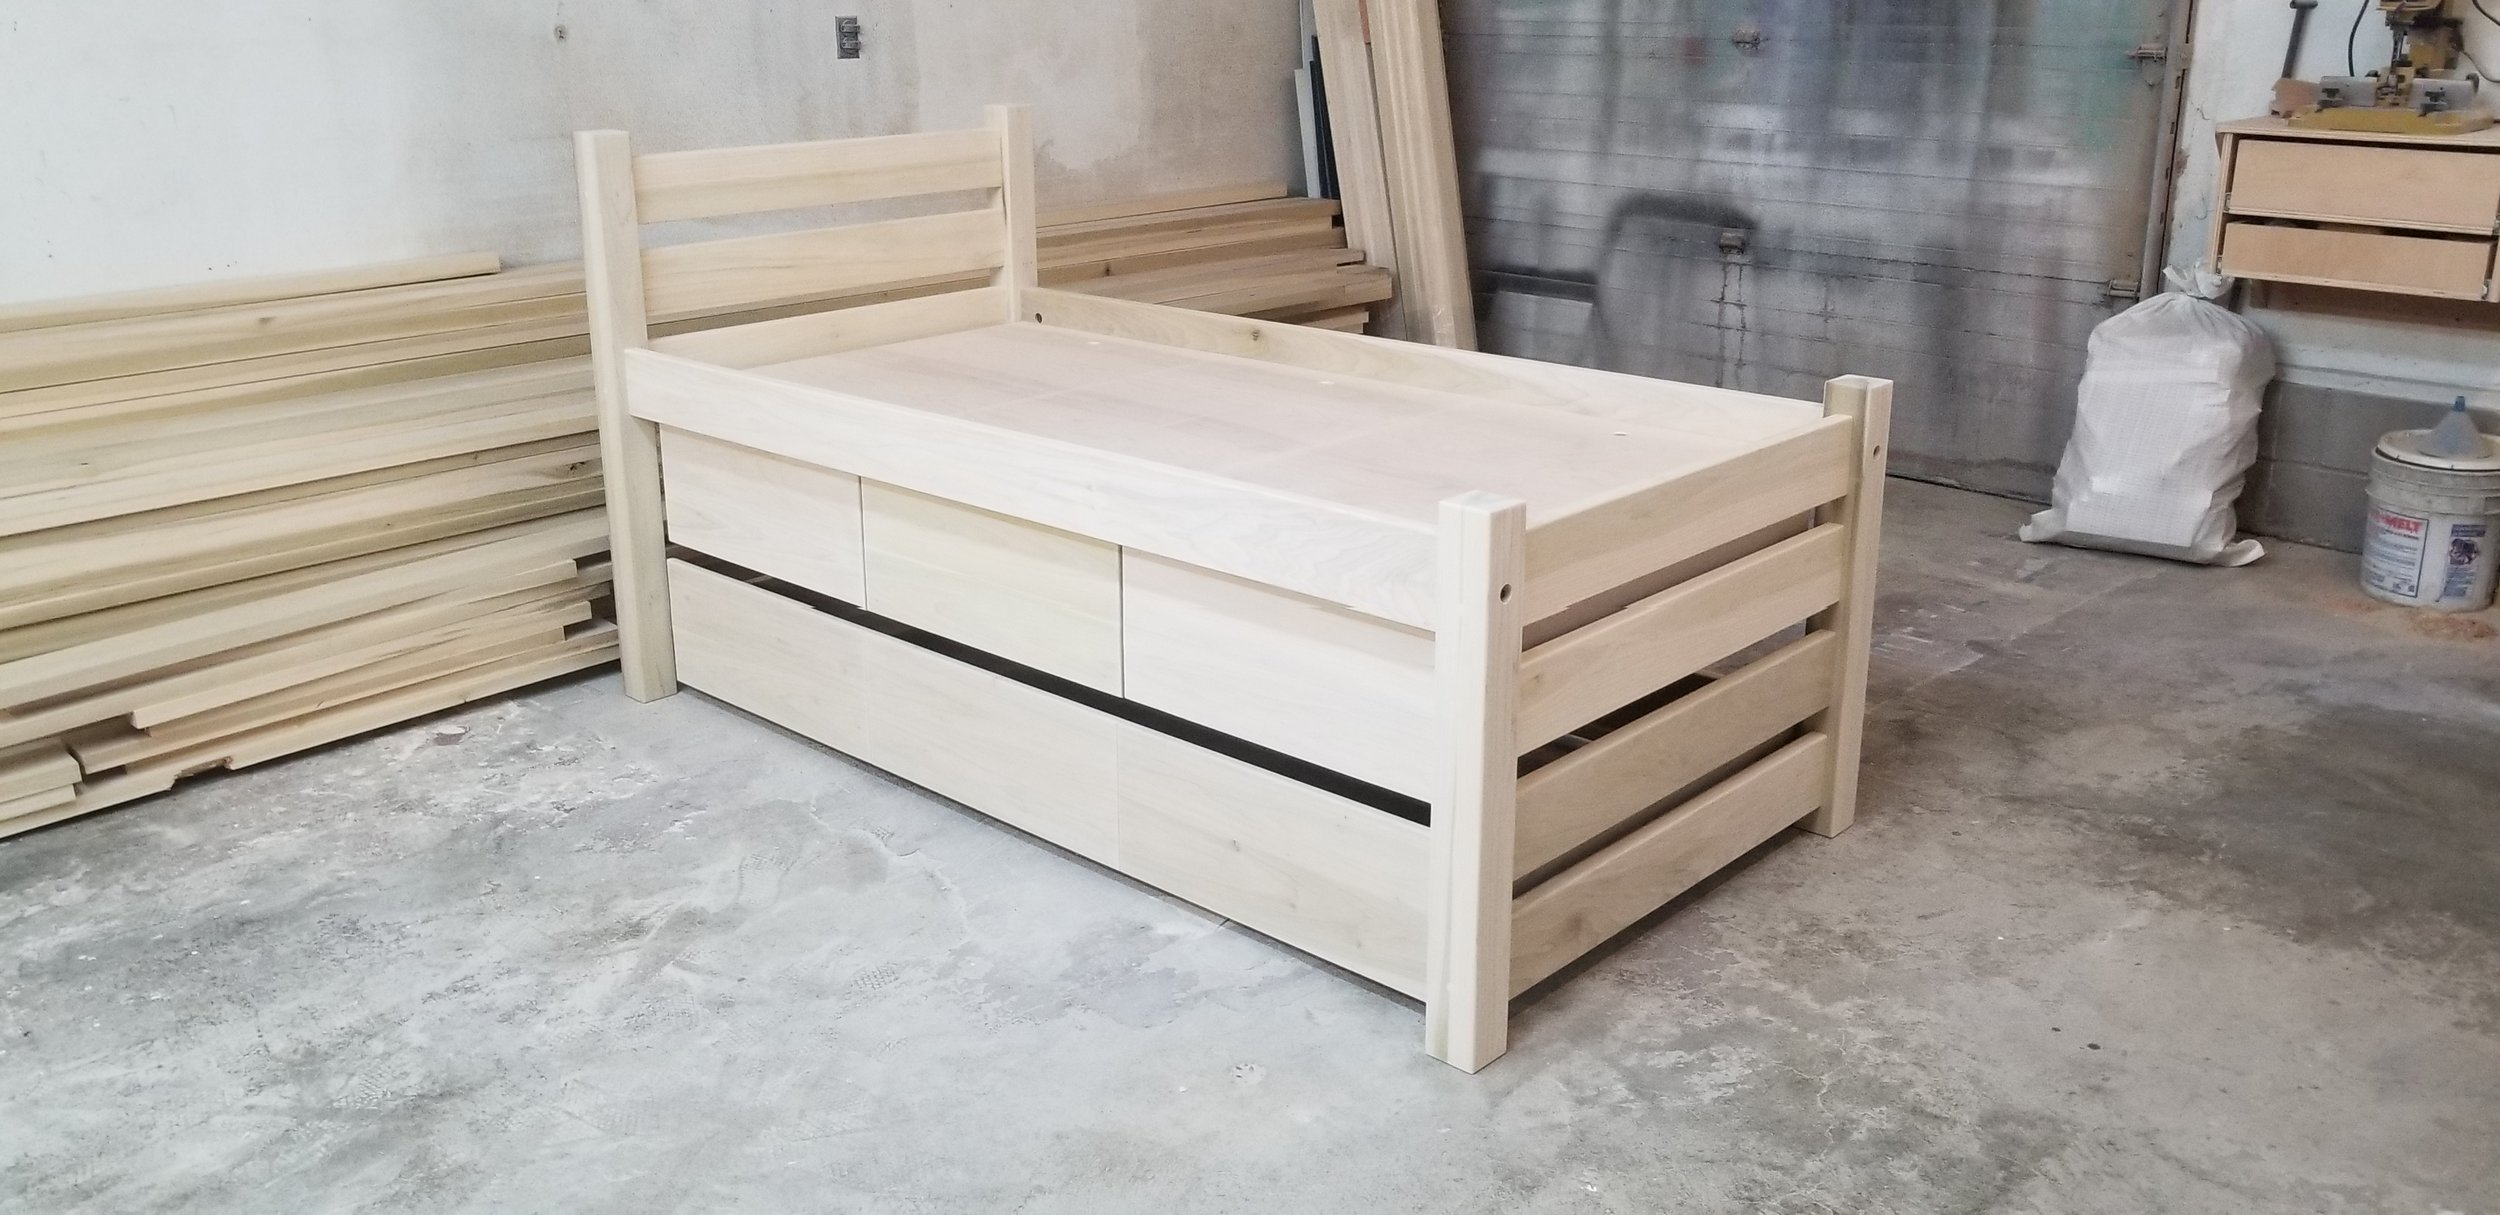 #43 MAINE CAPTAIN'S BED UNFINISHED 1.jpg